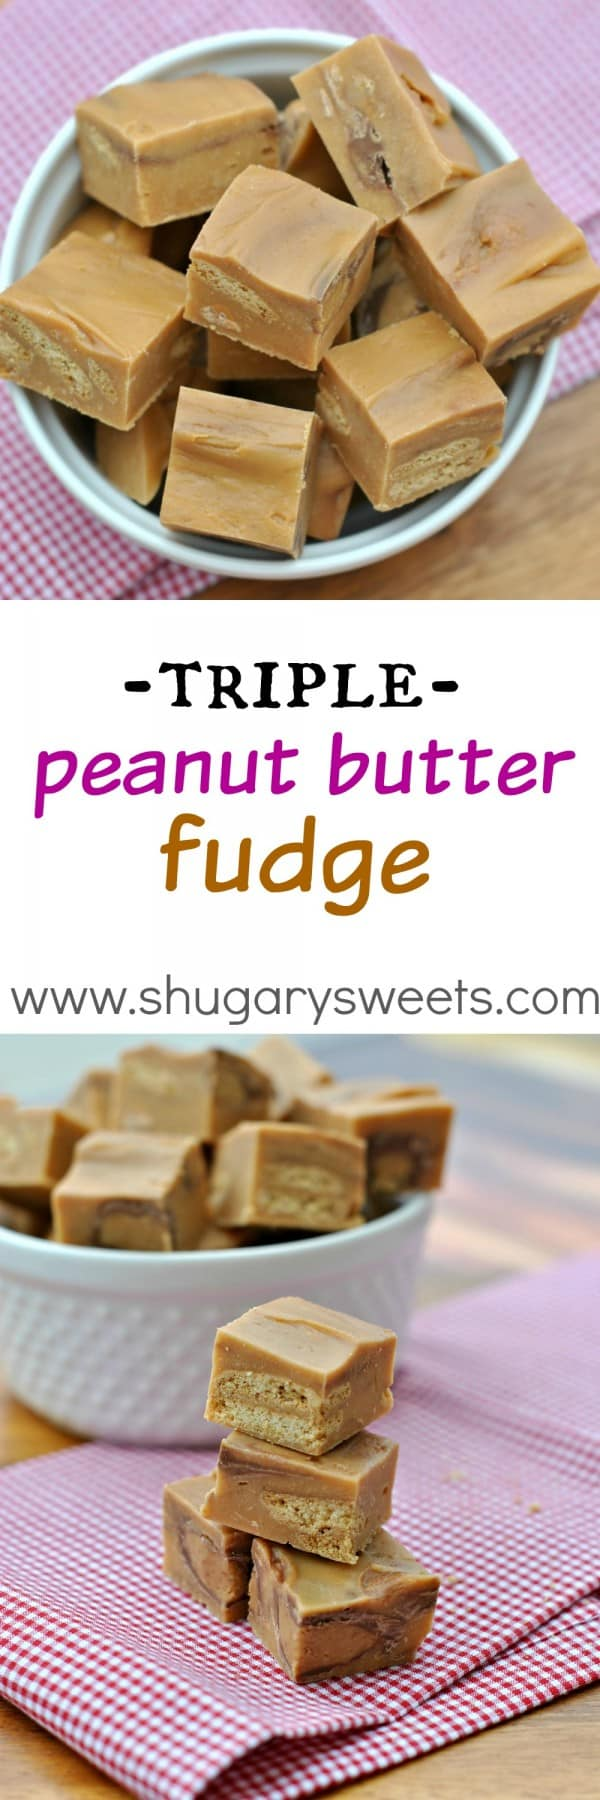 Triple Peanut Butter in this ultimate Peanut Butter Lover's Fudge recipe! Easy and delicious!